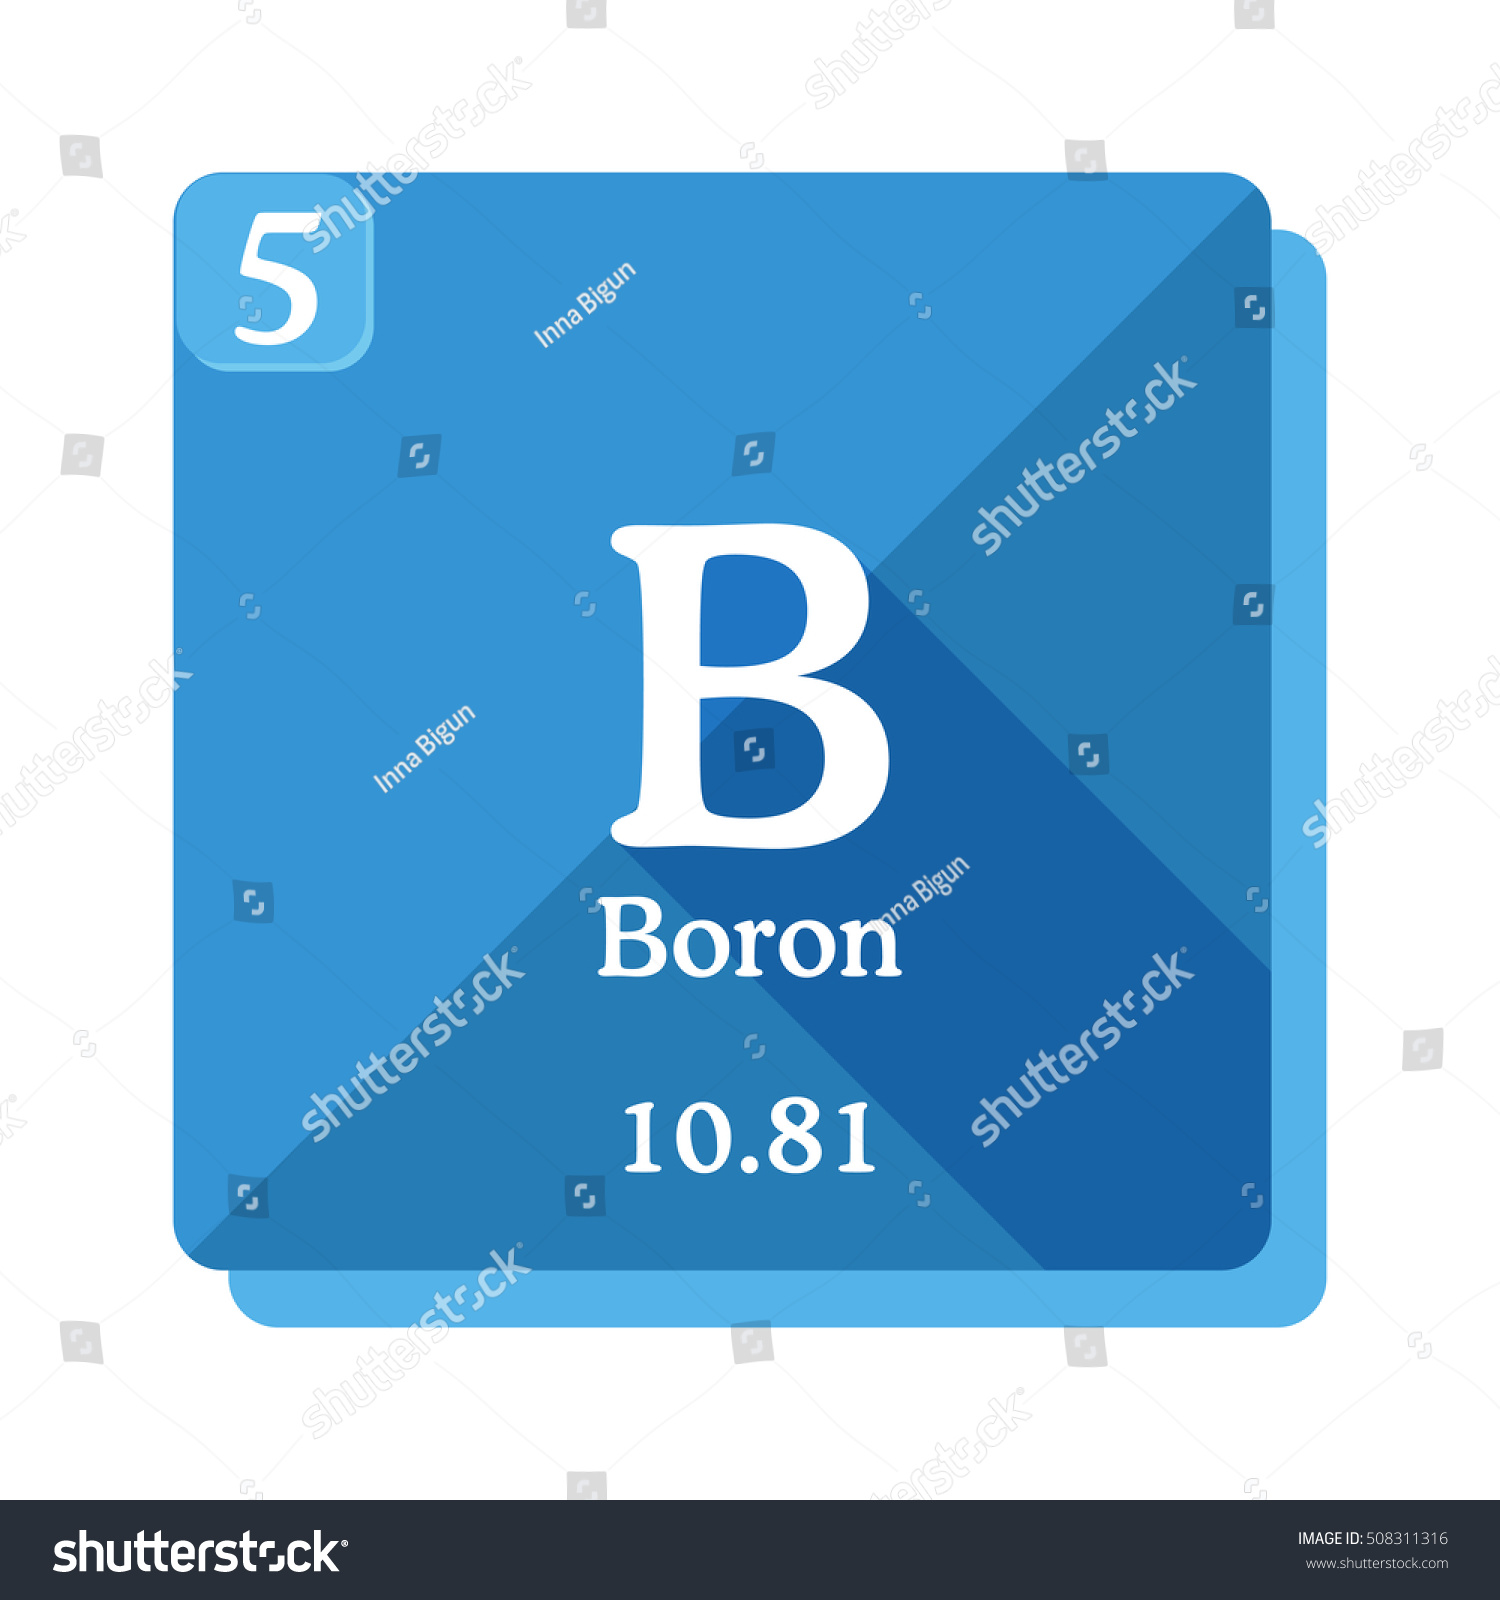 The symbol of boron images symbol and sign ideas boron chemical element periodic table elements stock vector boron chemical element periodic table of the elements buycottarizona